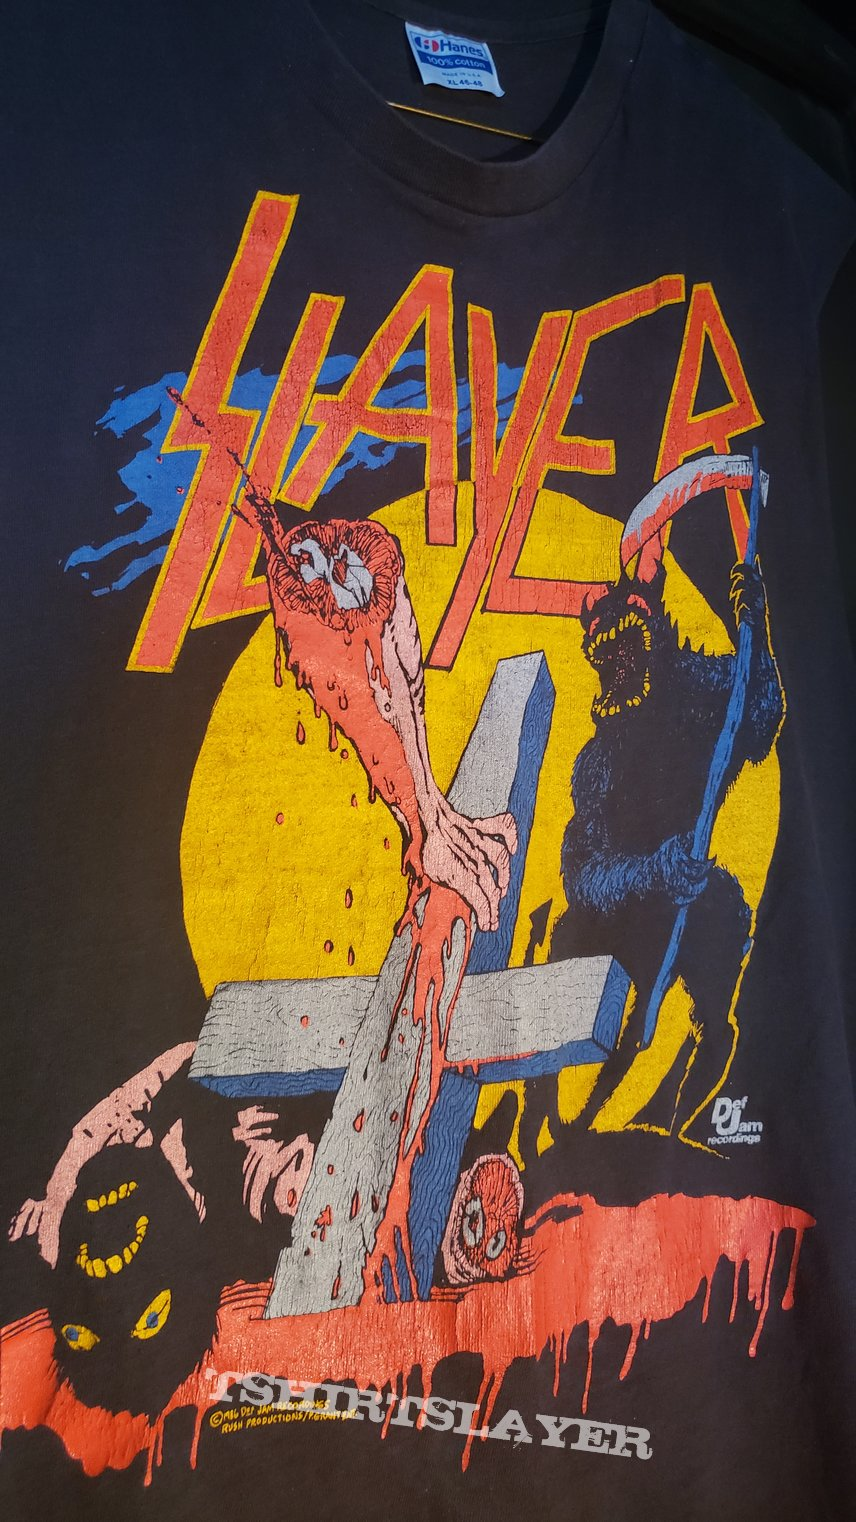 Slayer - Reign in Blood Tour